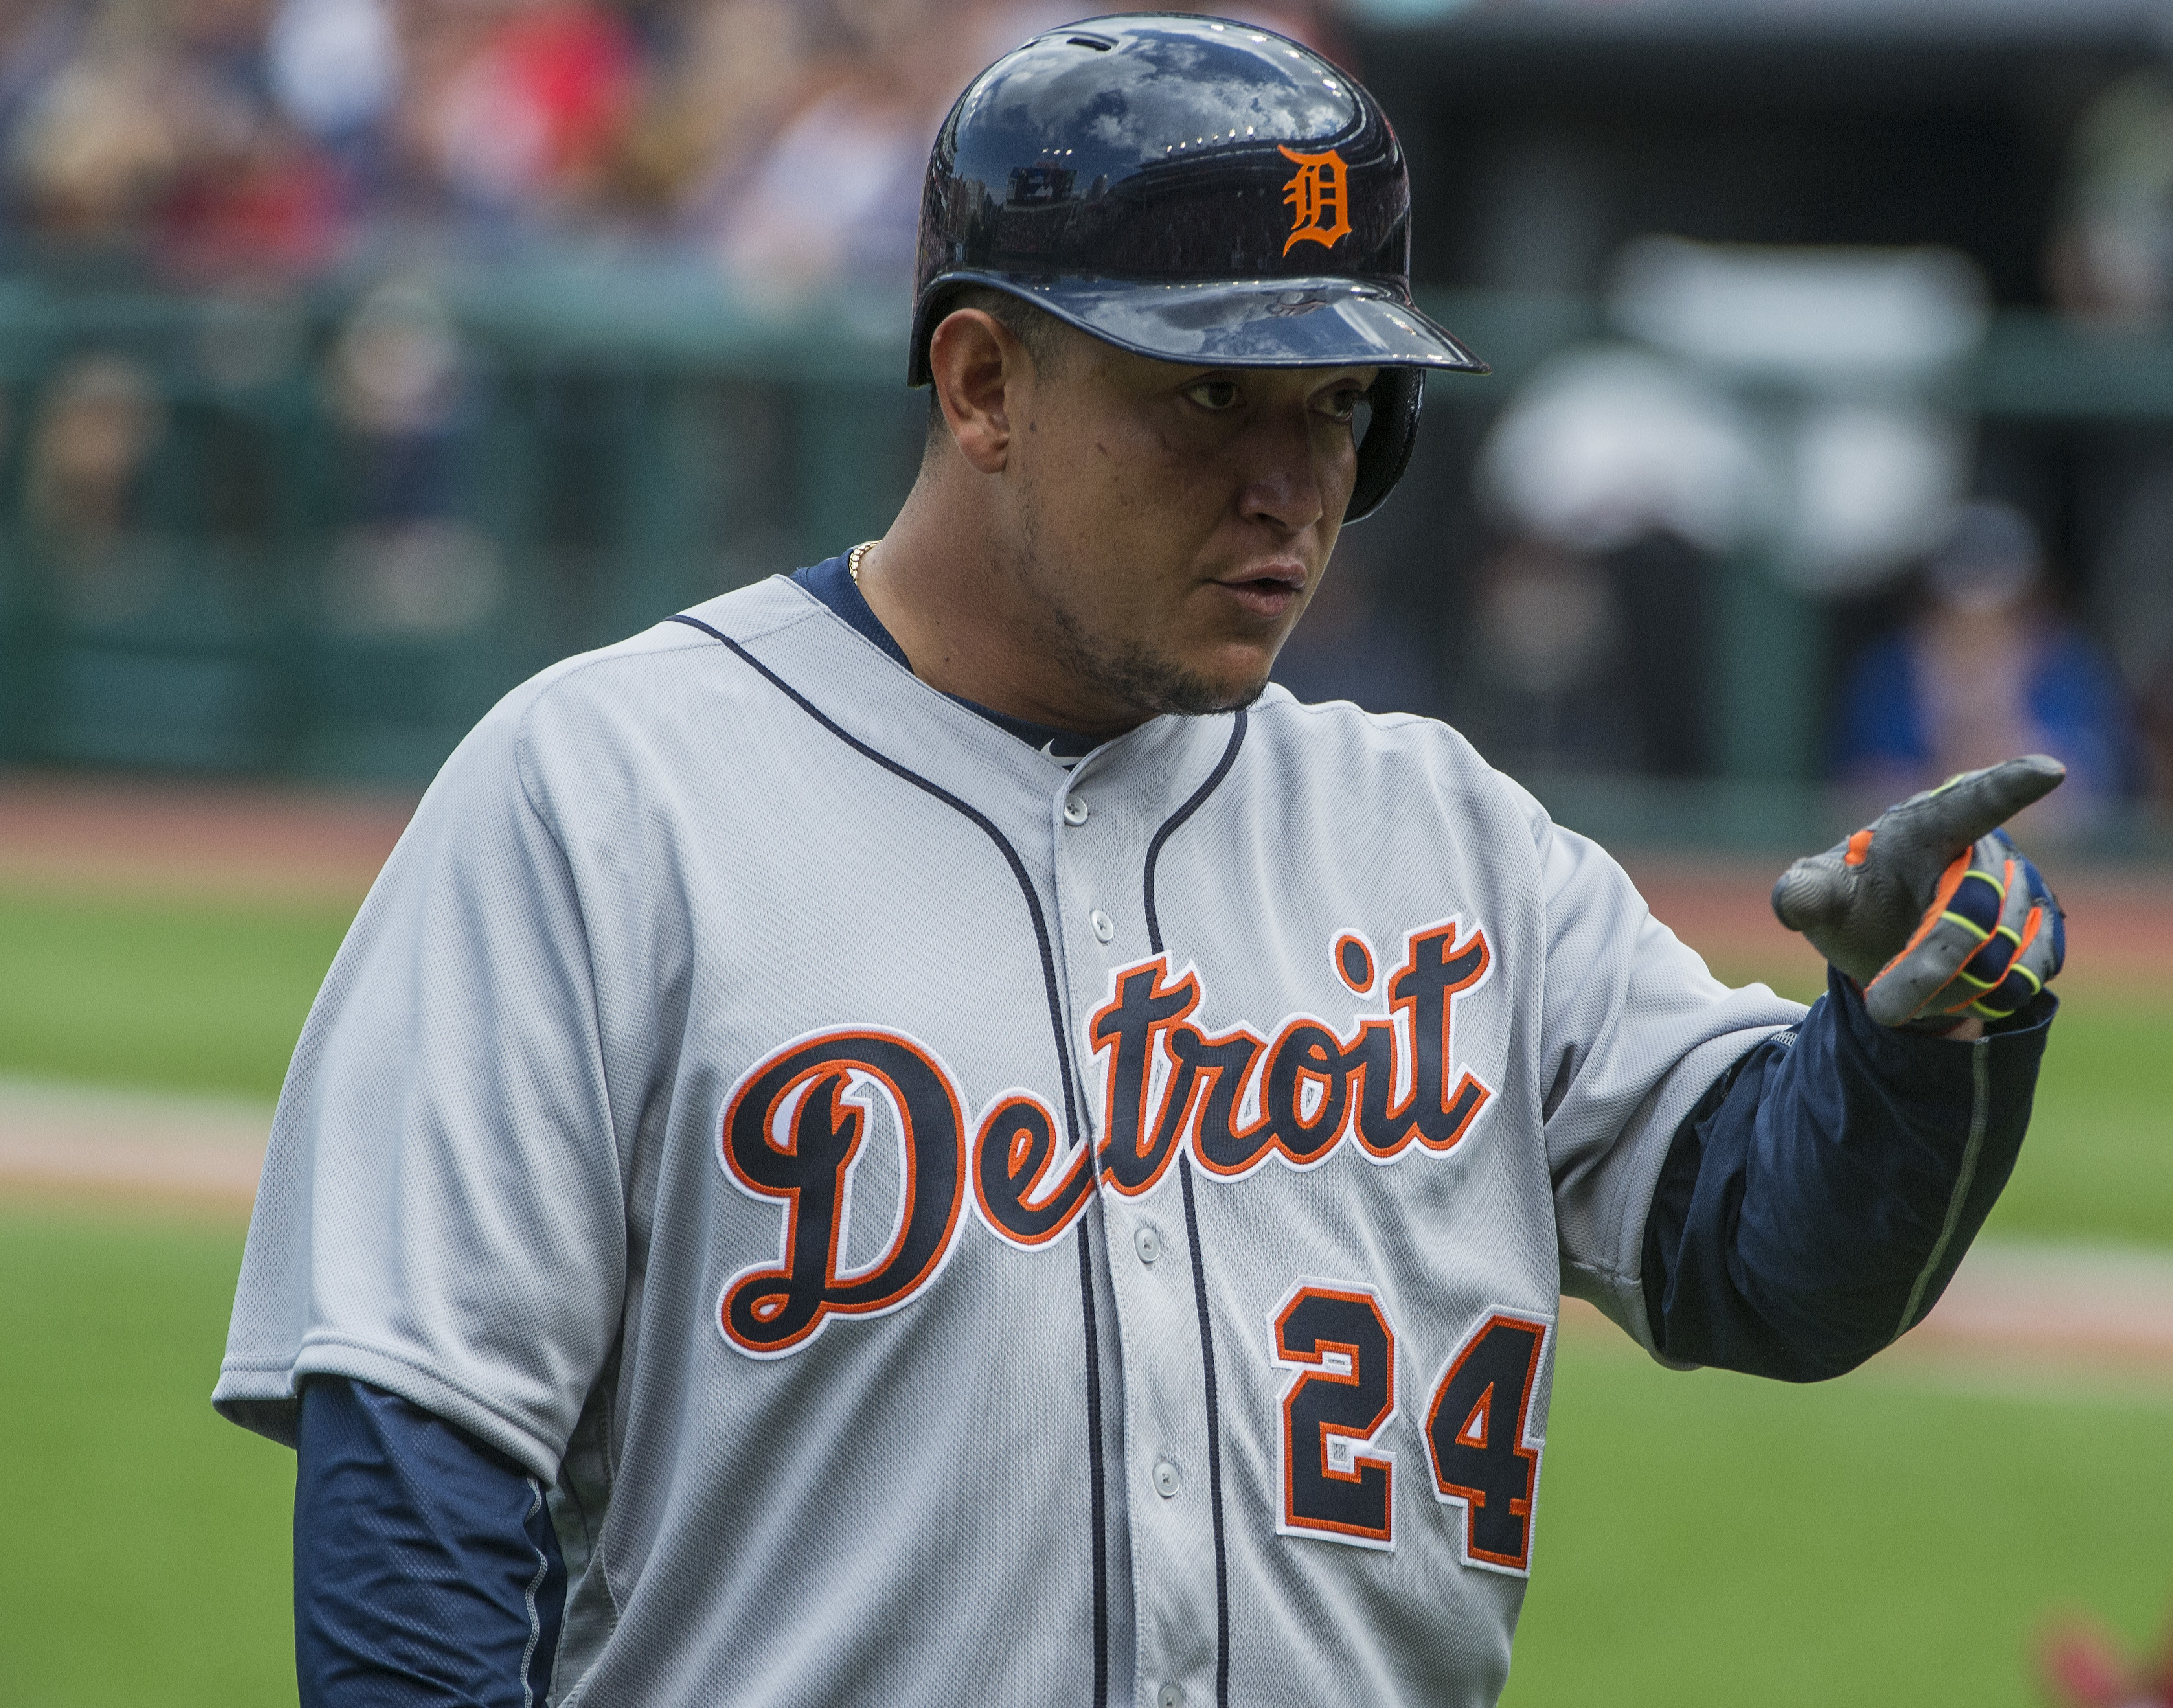 Detroit Tigers' Miguel Cabrera points at the Cleveland Indians dugout after being hit by a pitch from Indians' Trevor Bauer during the first a baseball game in Cleveland, Sunday, Sept. 18, 2016. (AP Photo/Phil Long)